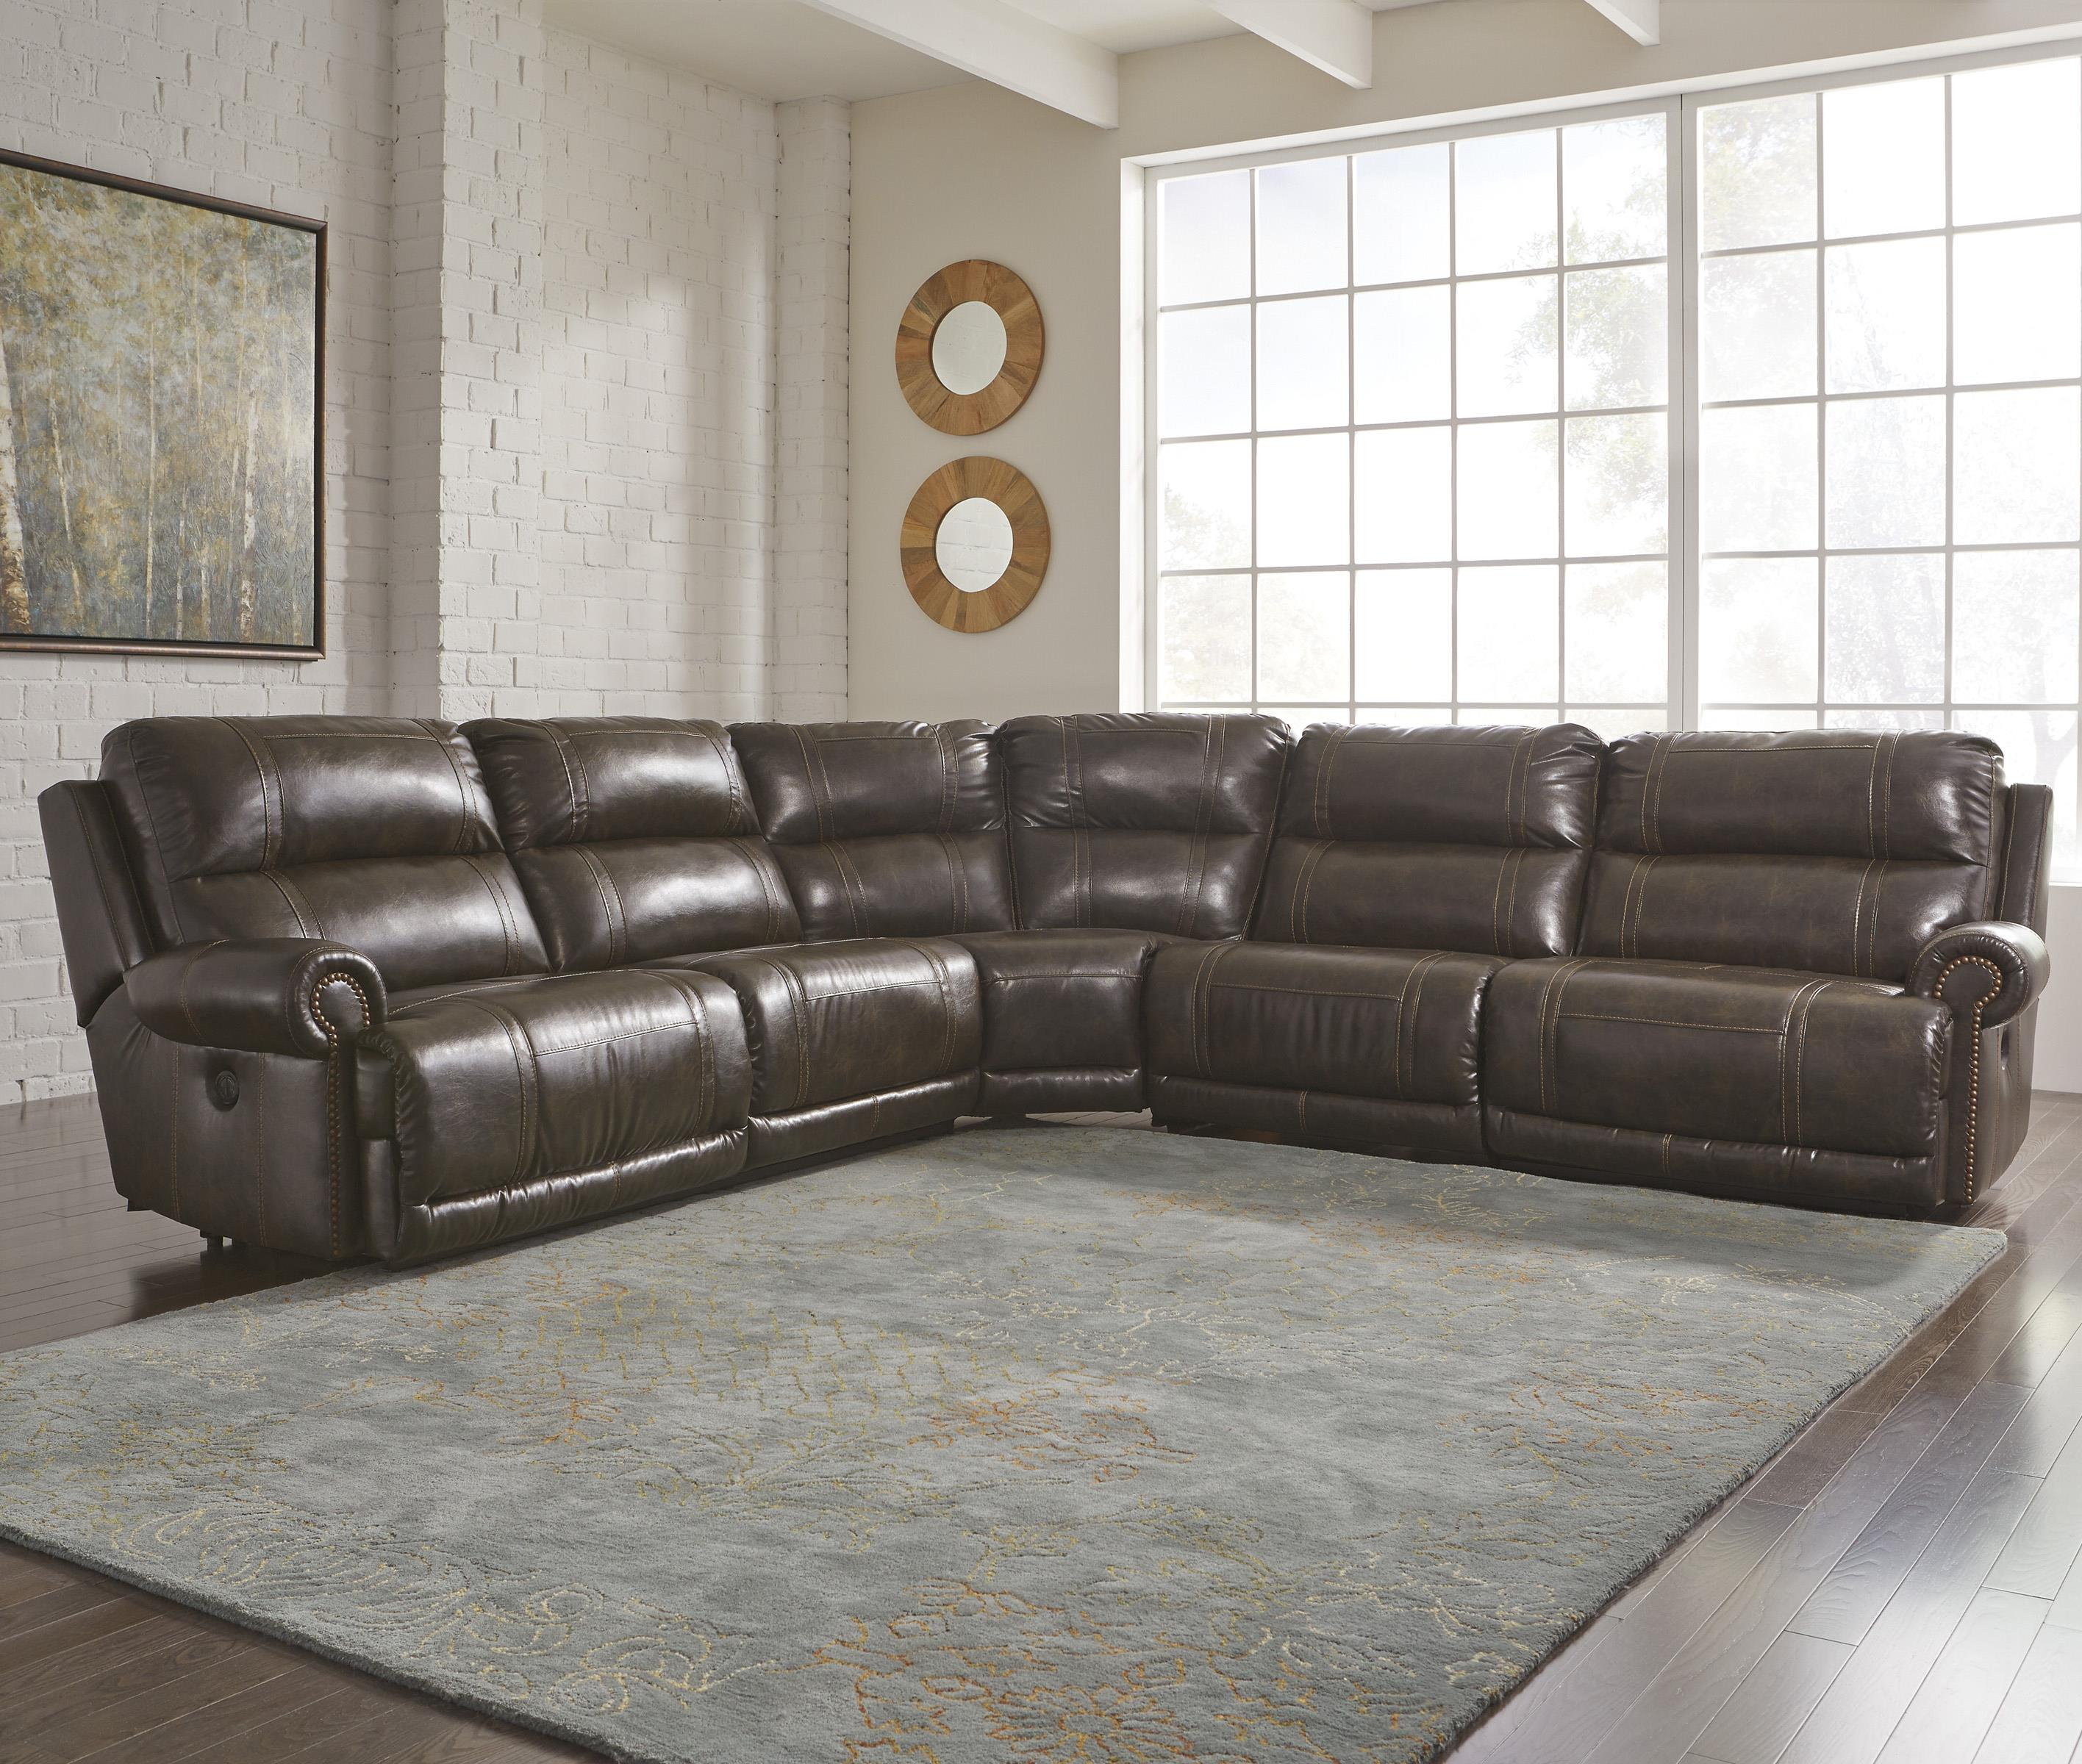 Signature Design by Ashley Dak DuraBlend® 5-Piece Reclining Sectional - Item Number: 2270040+19+77+46+41